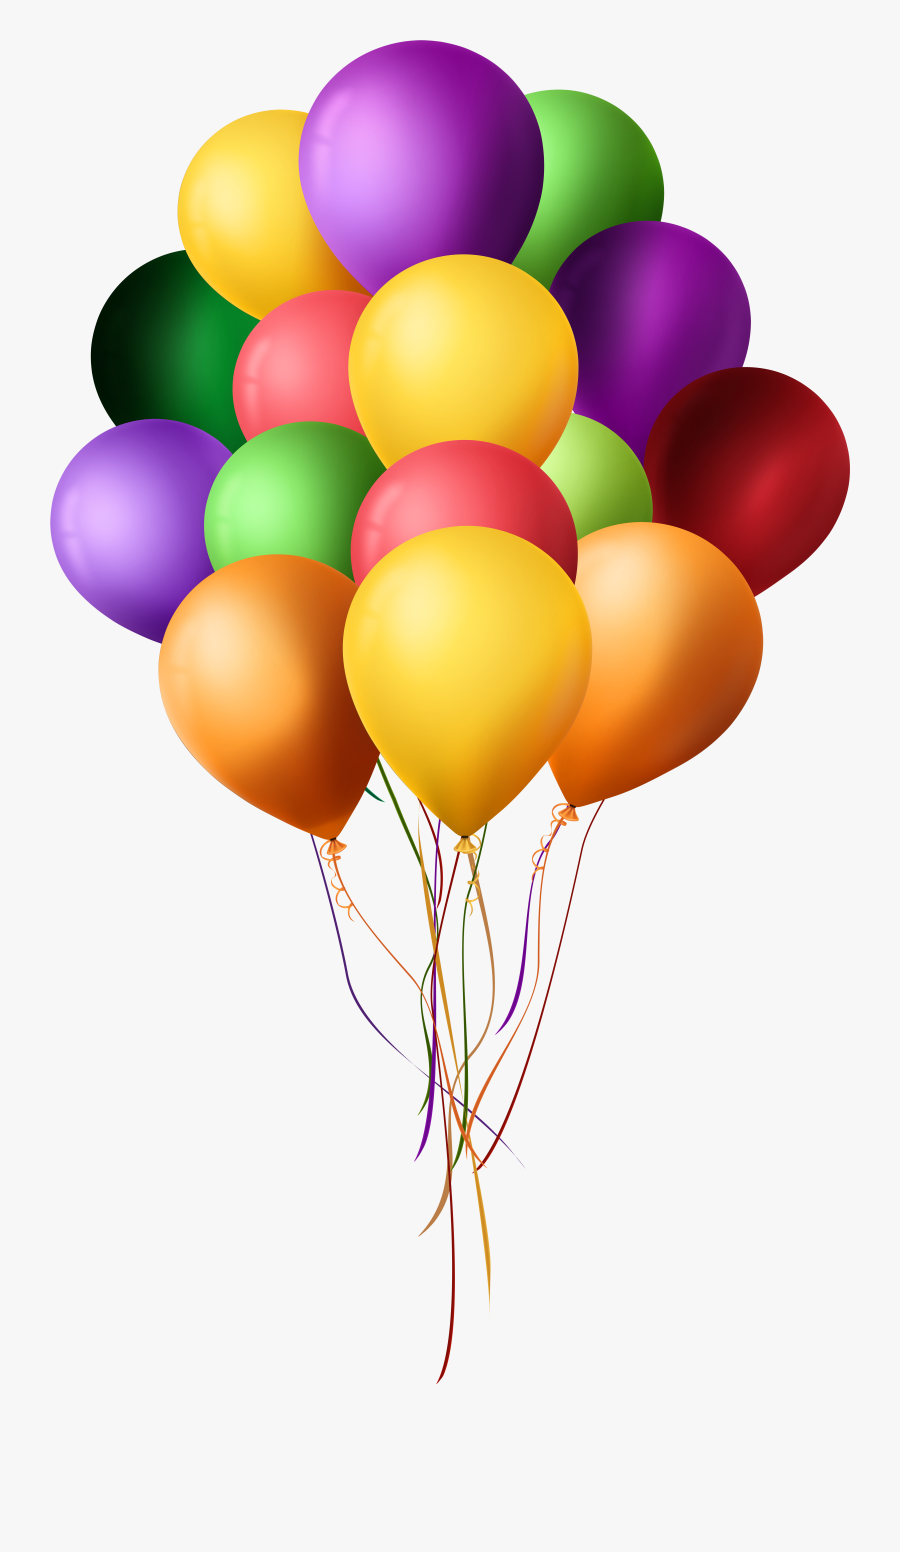 Bunch Of Balloons Png Clip Art - Png Format Balloon Png Hd, Transparent Clipart